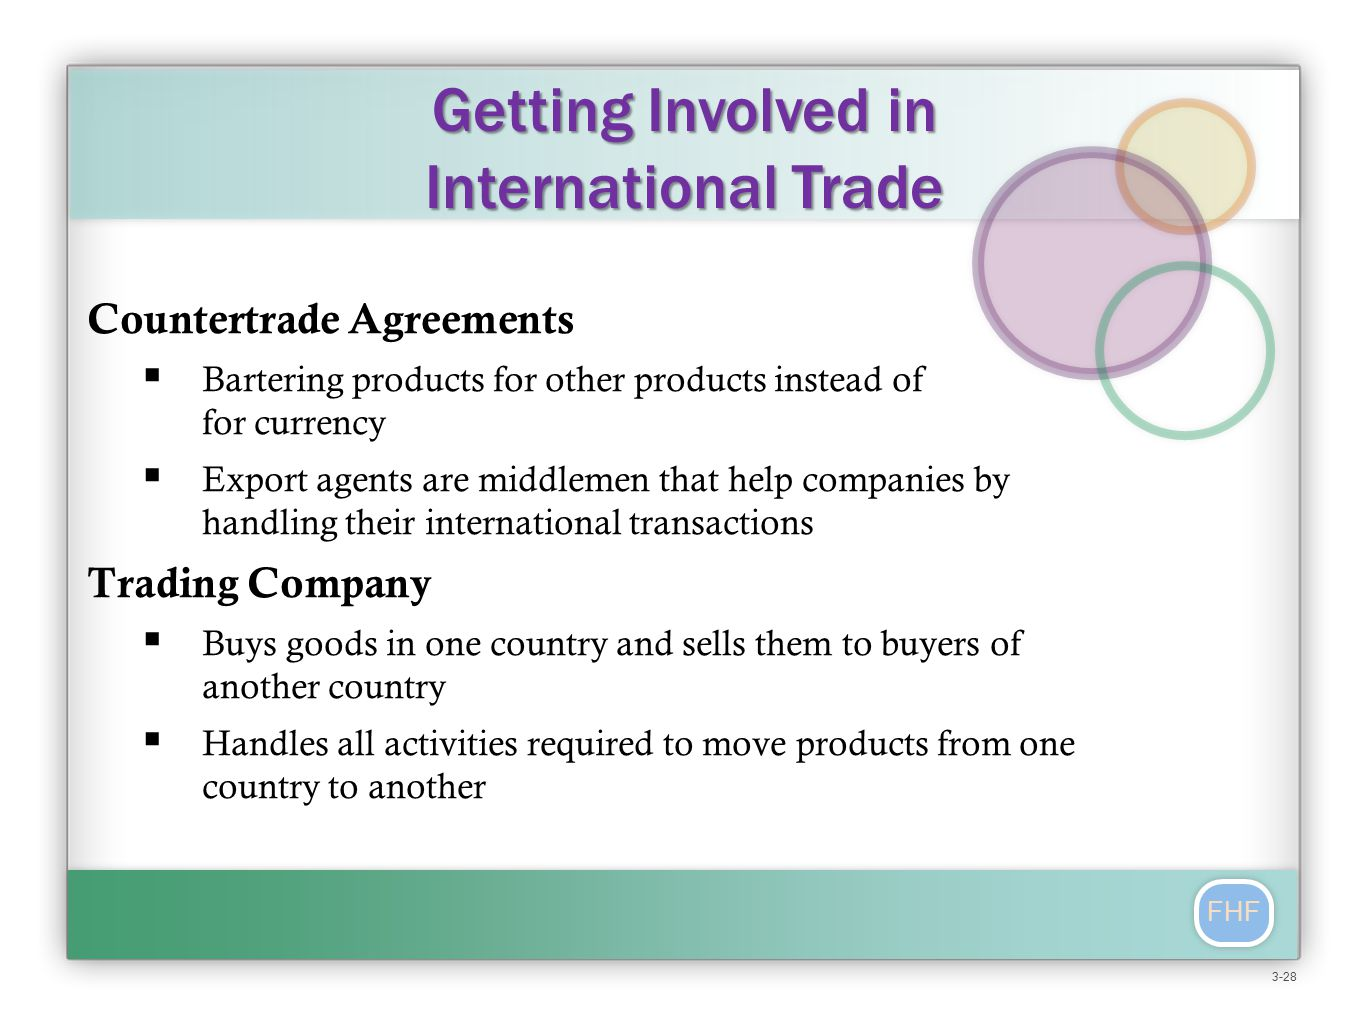 FHF Countertrade Agreements  Bartering products for other products instead of for currency  Export agents are middlemen that help companies by handling their international transactions Trading Company  Buys goods in one country and sells them to buyers of another country  Handles all activities required to move products from one country to another Getting Involved in International Trade 3-28